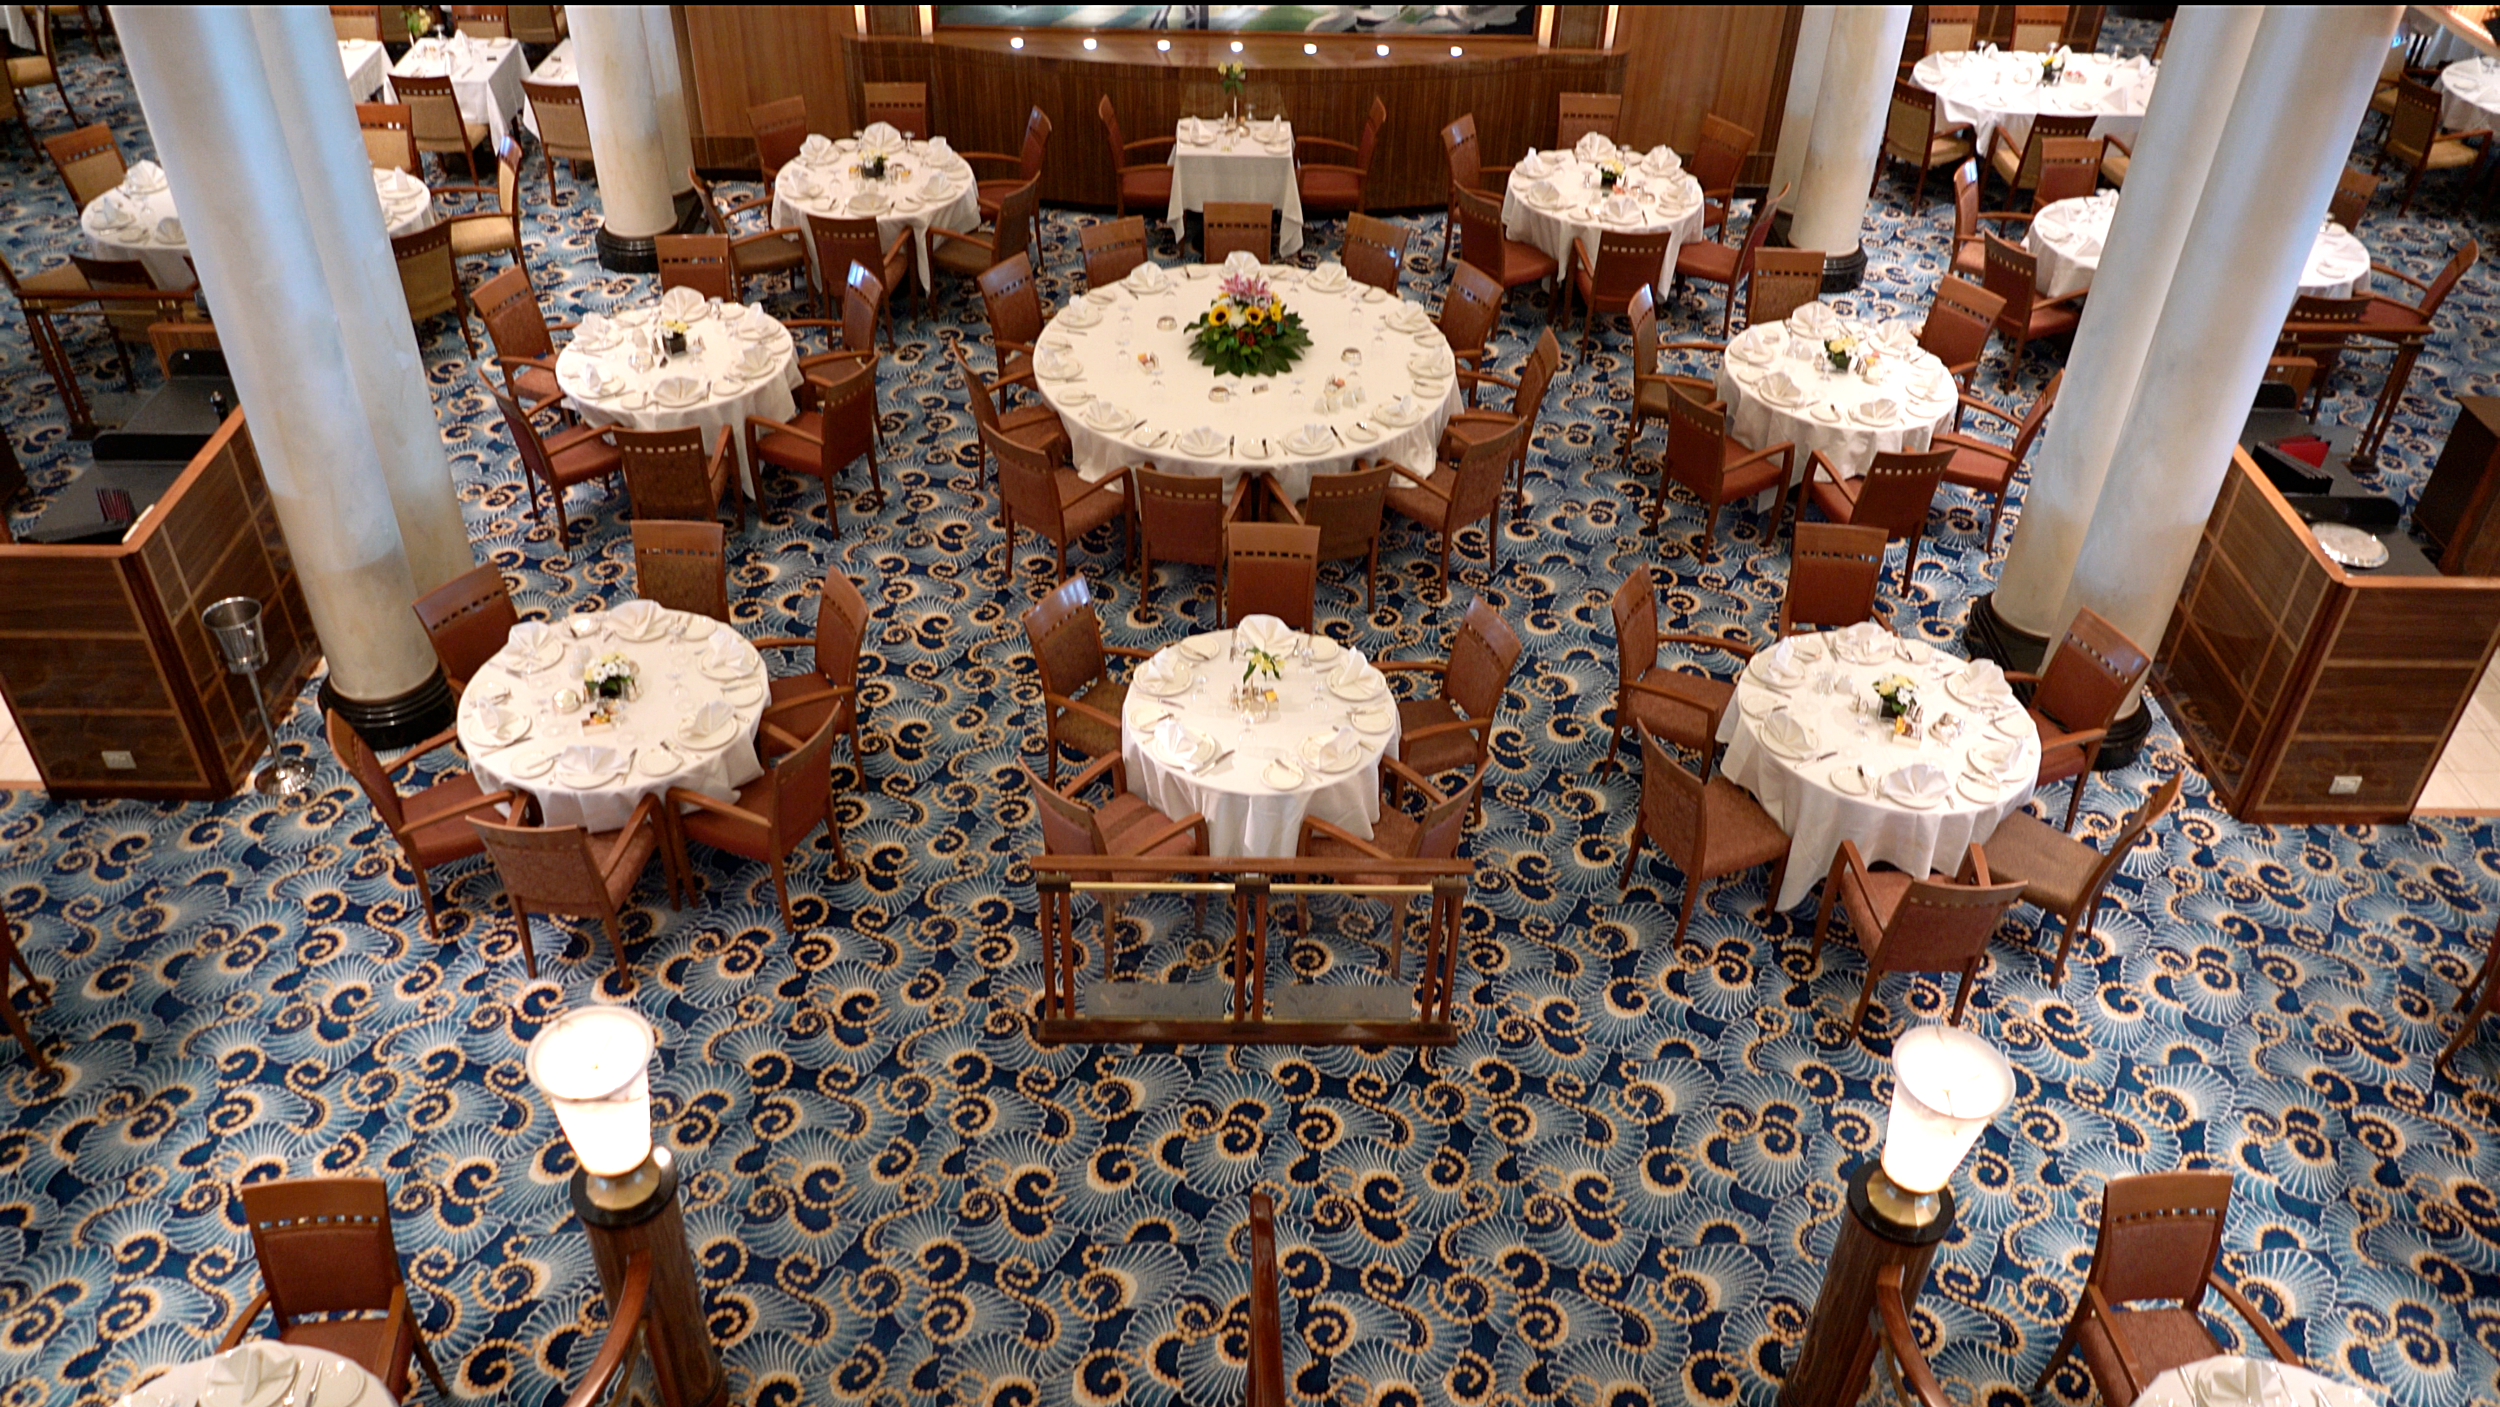 The lower level tables